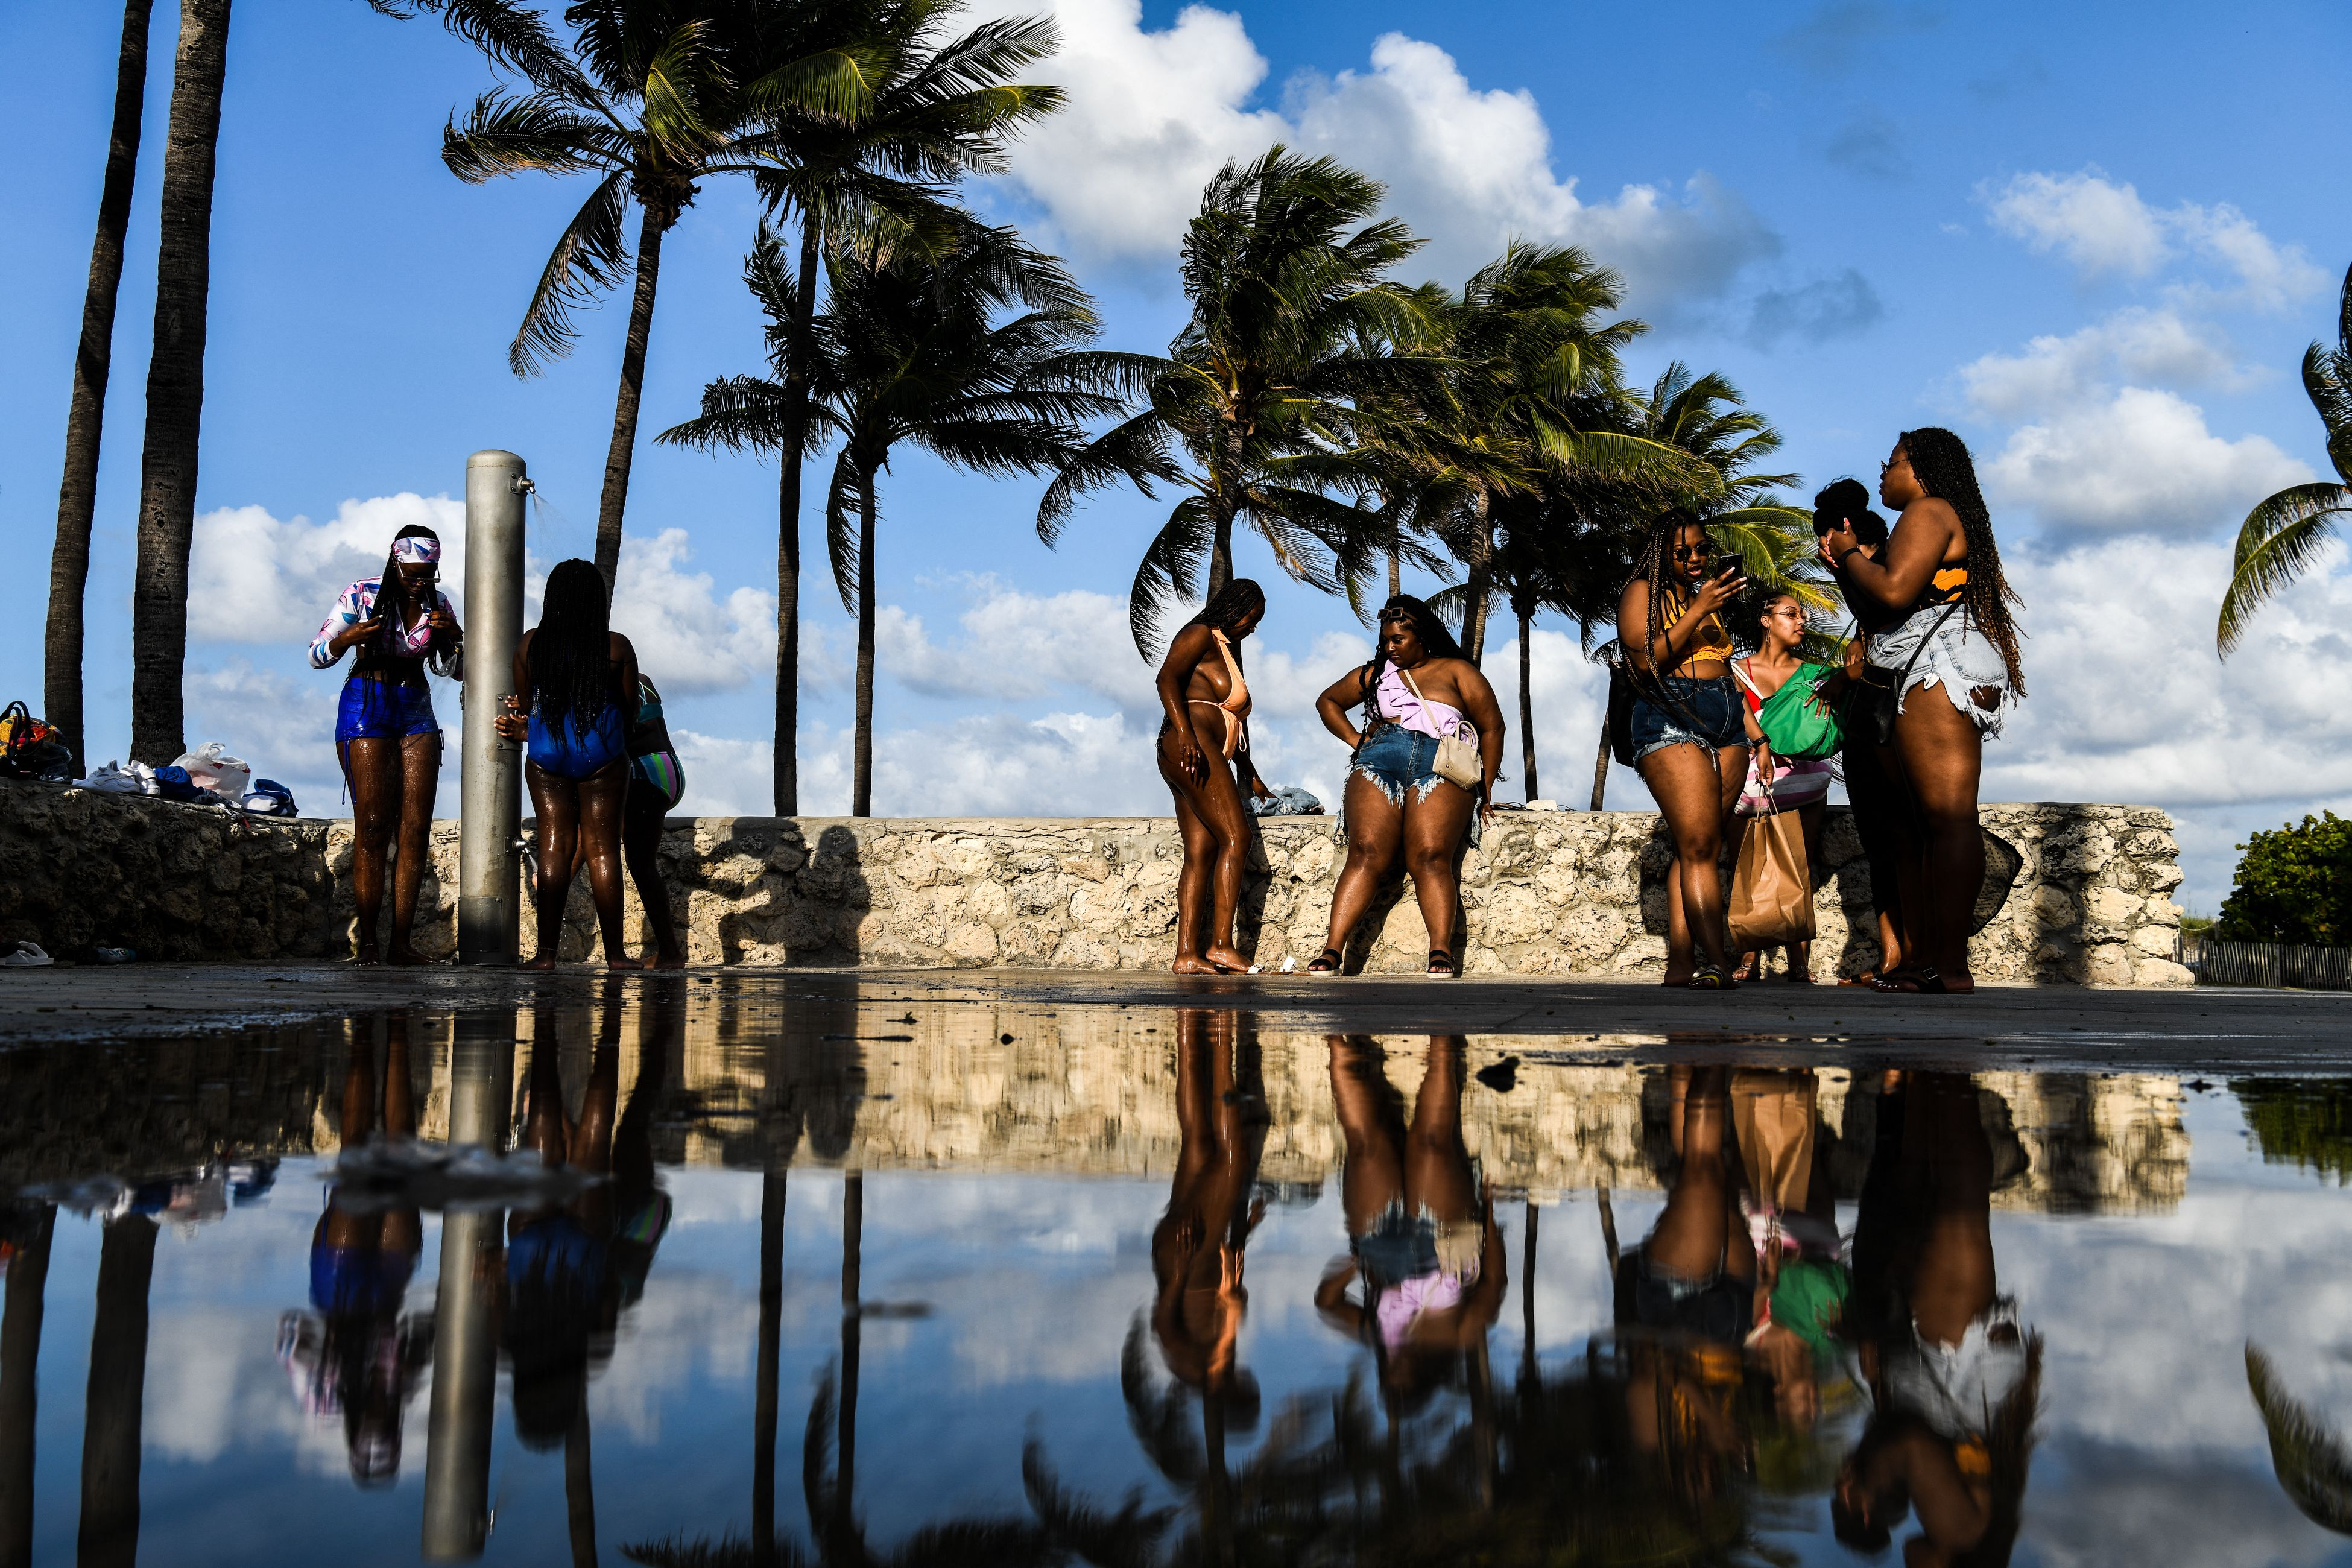 Tourists rinse their feet after getting out of the ocean in Miami Beach in May 2021.